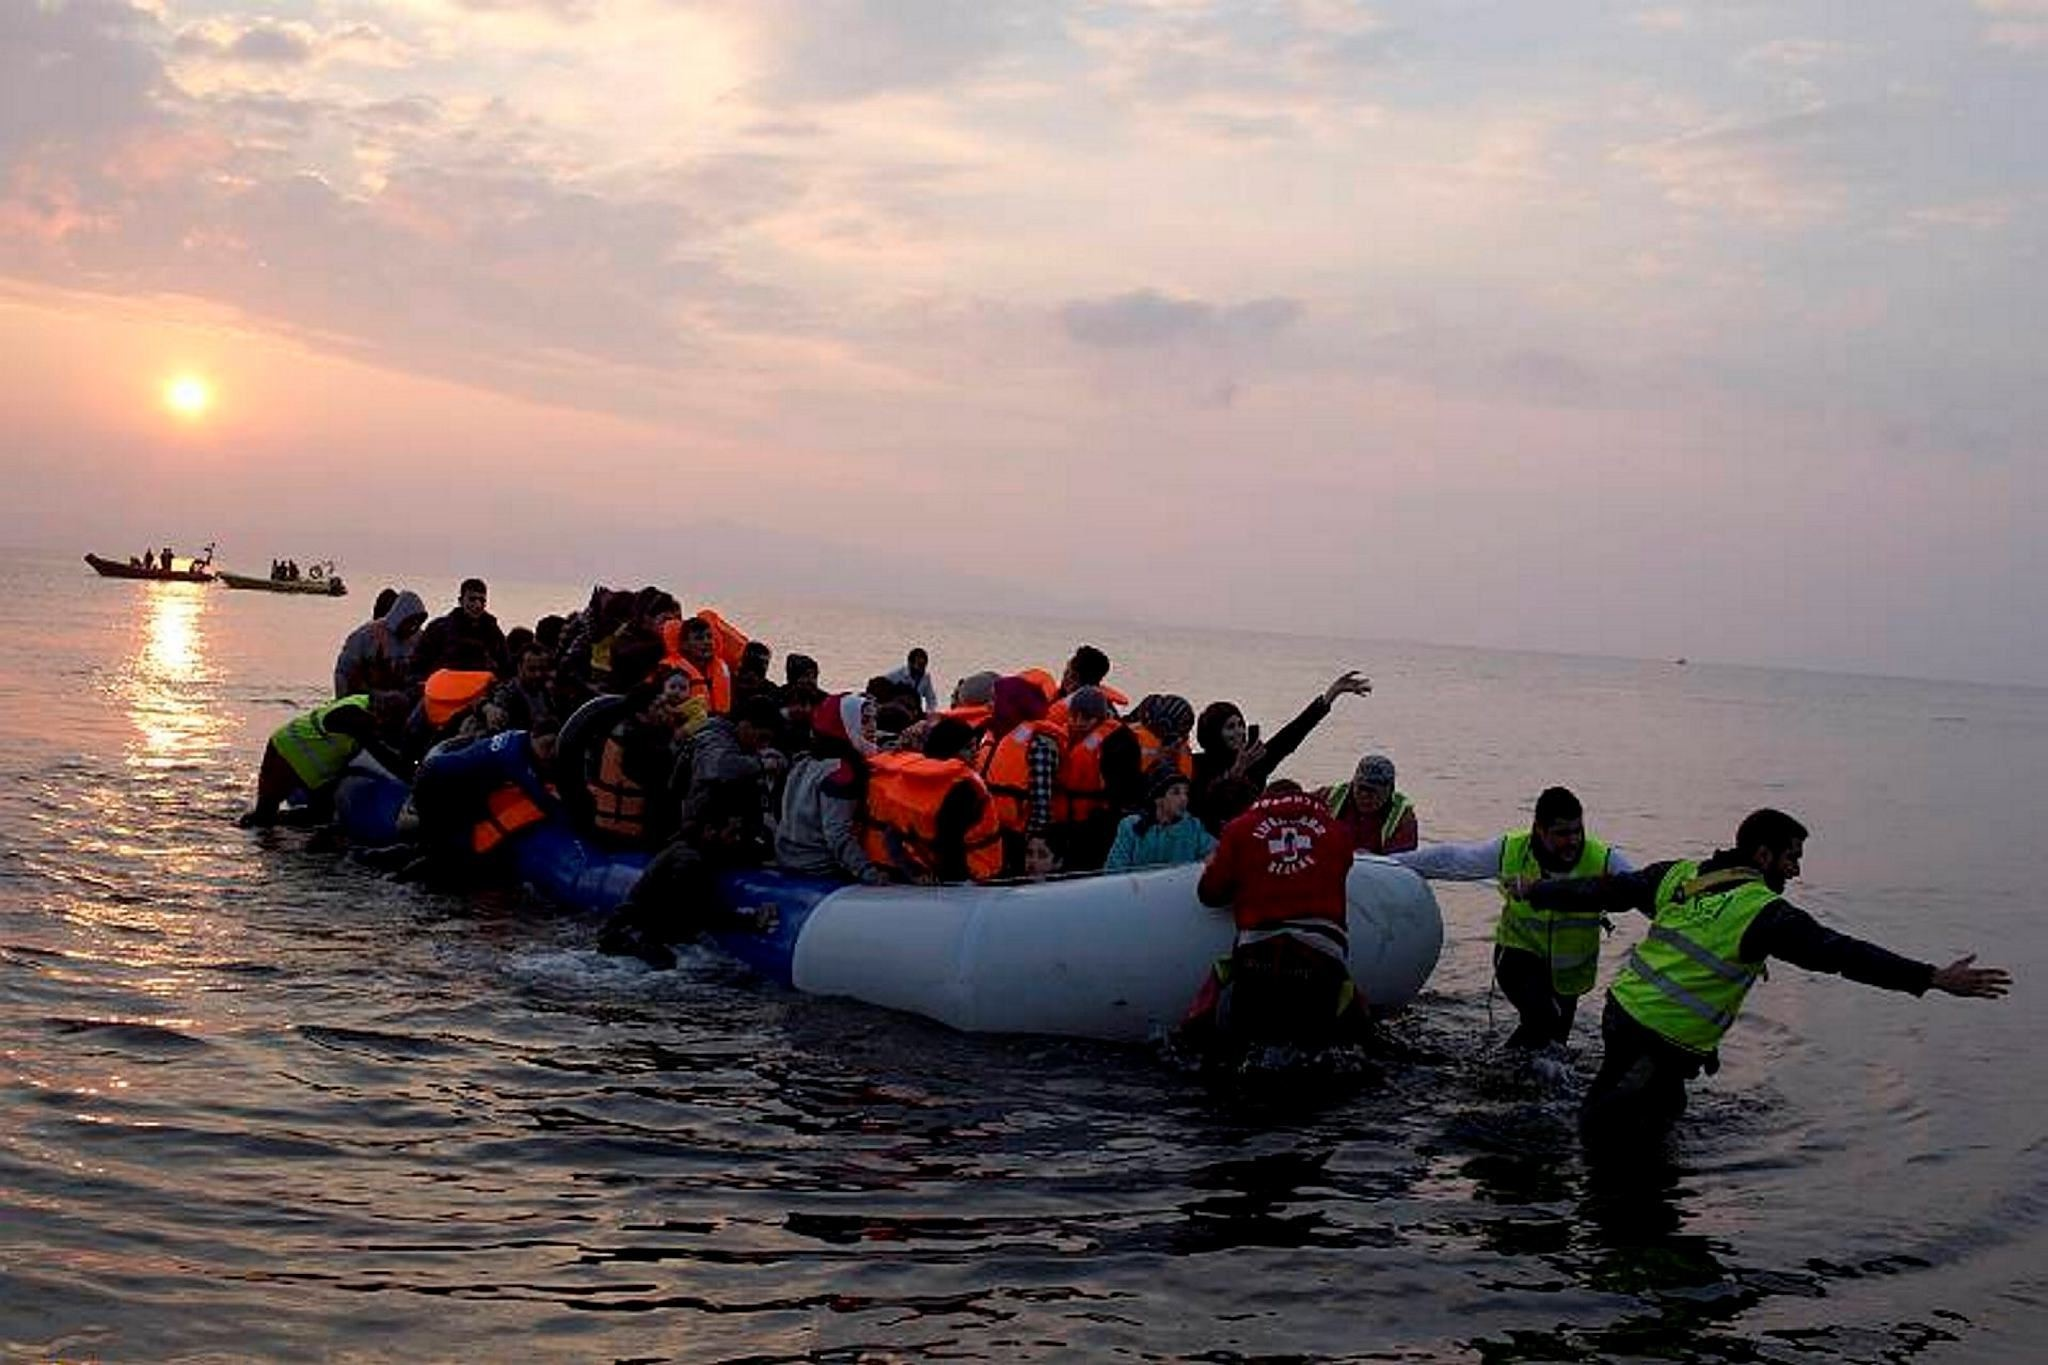 In this March 20, 2016 file photo, volunteers help migrants and refugees on a dingy as they arrive at the shore of the northeastern Greek island of Lesbos, after crossing the Aegean sea from Turkey.